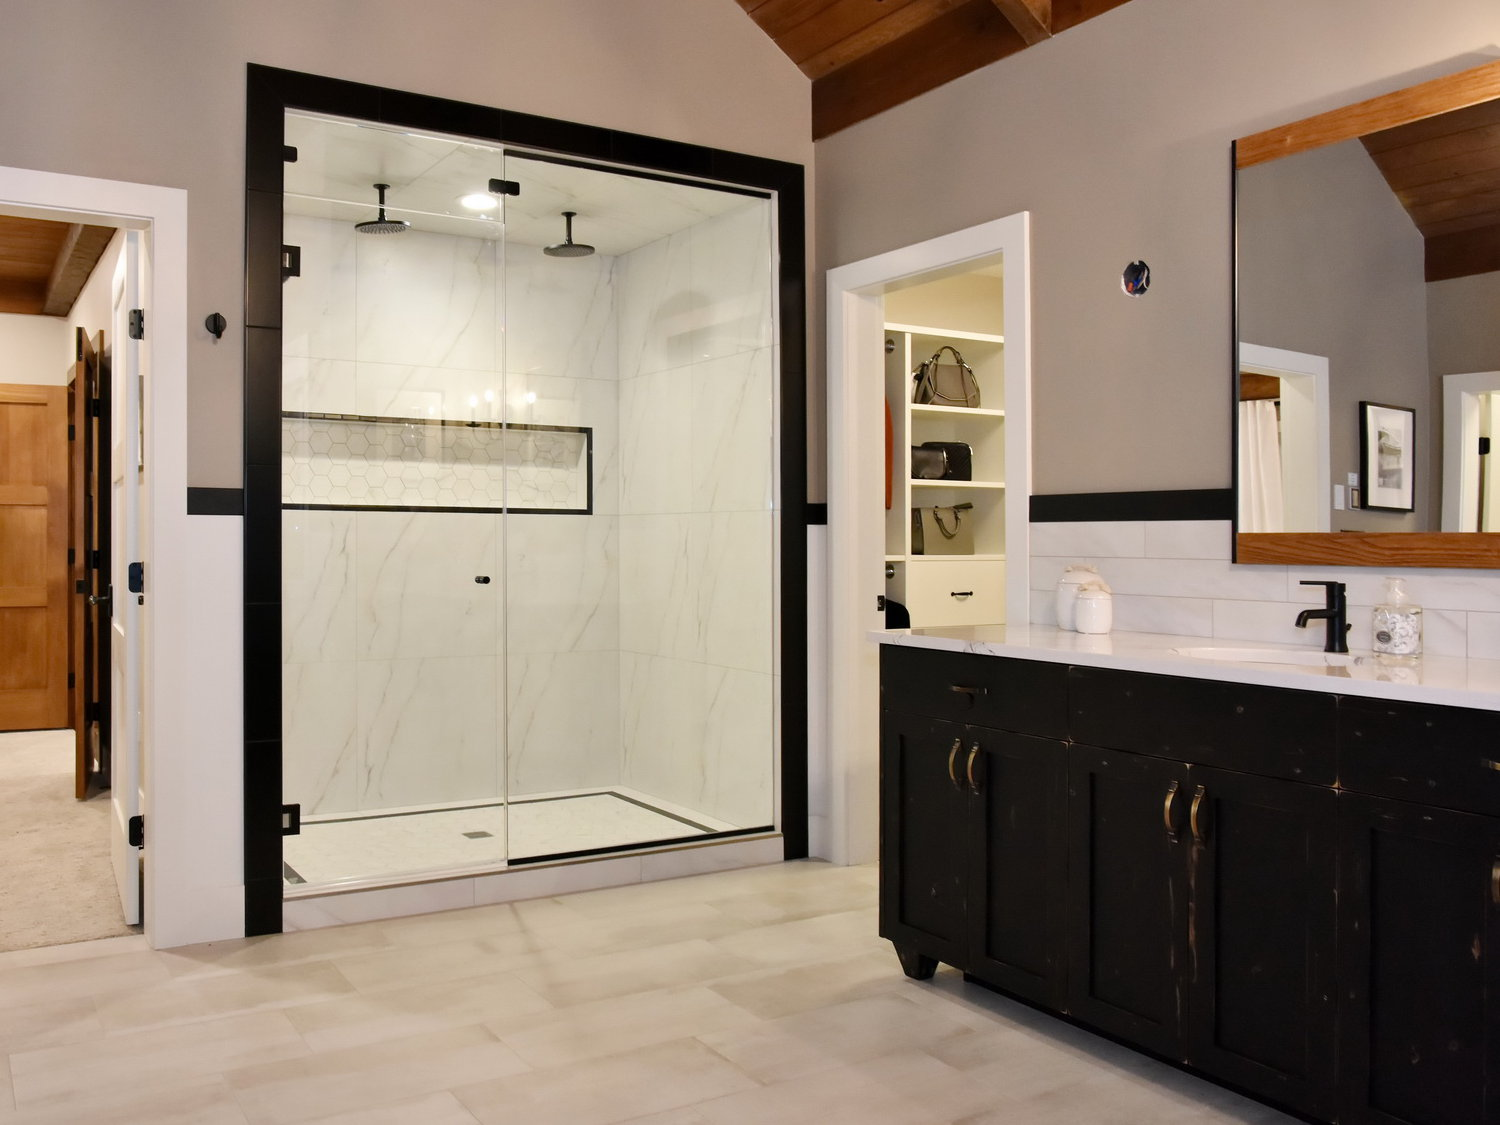 Master shower - Delta trinsic in matte black